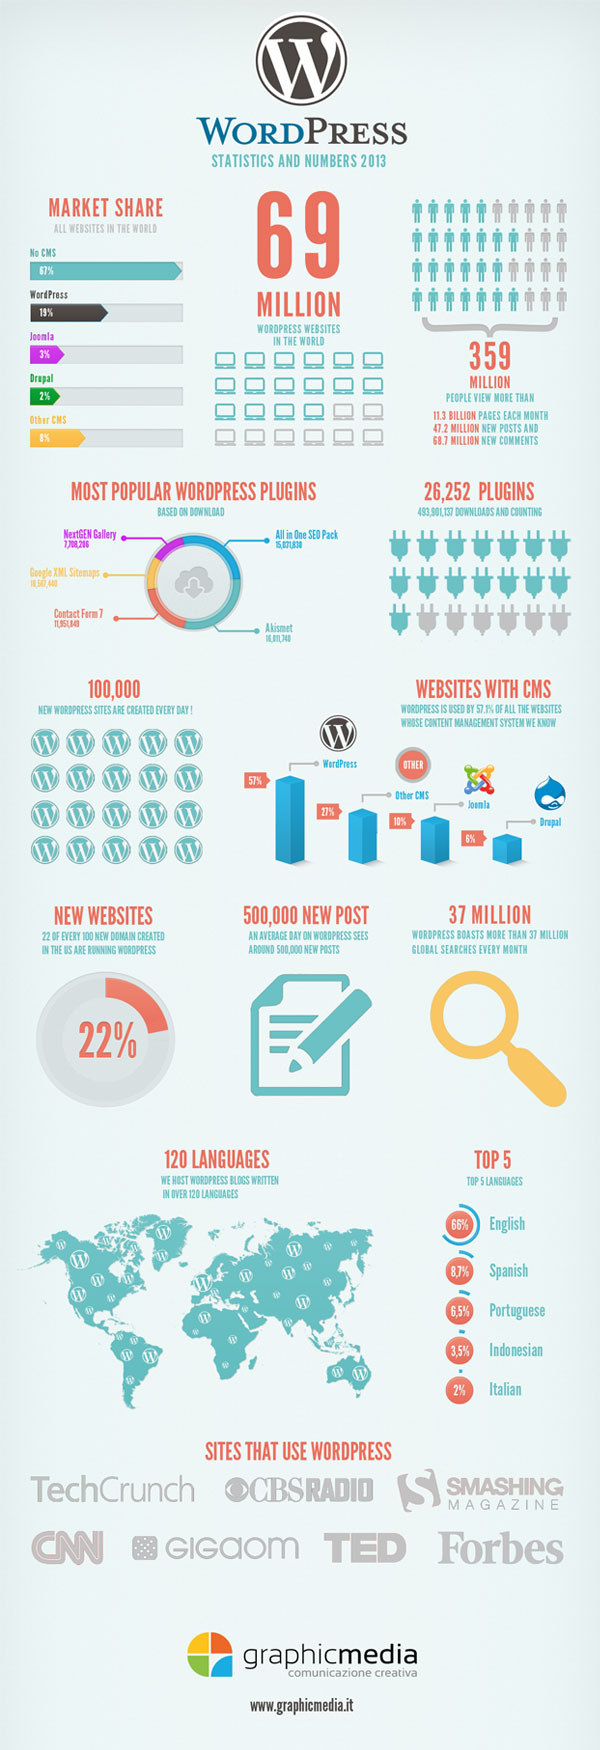 wordpress-statistics-and-numbers-2013